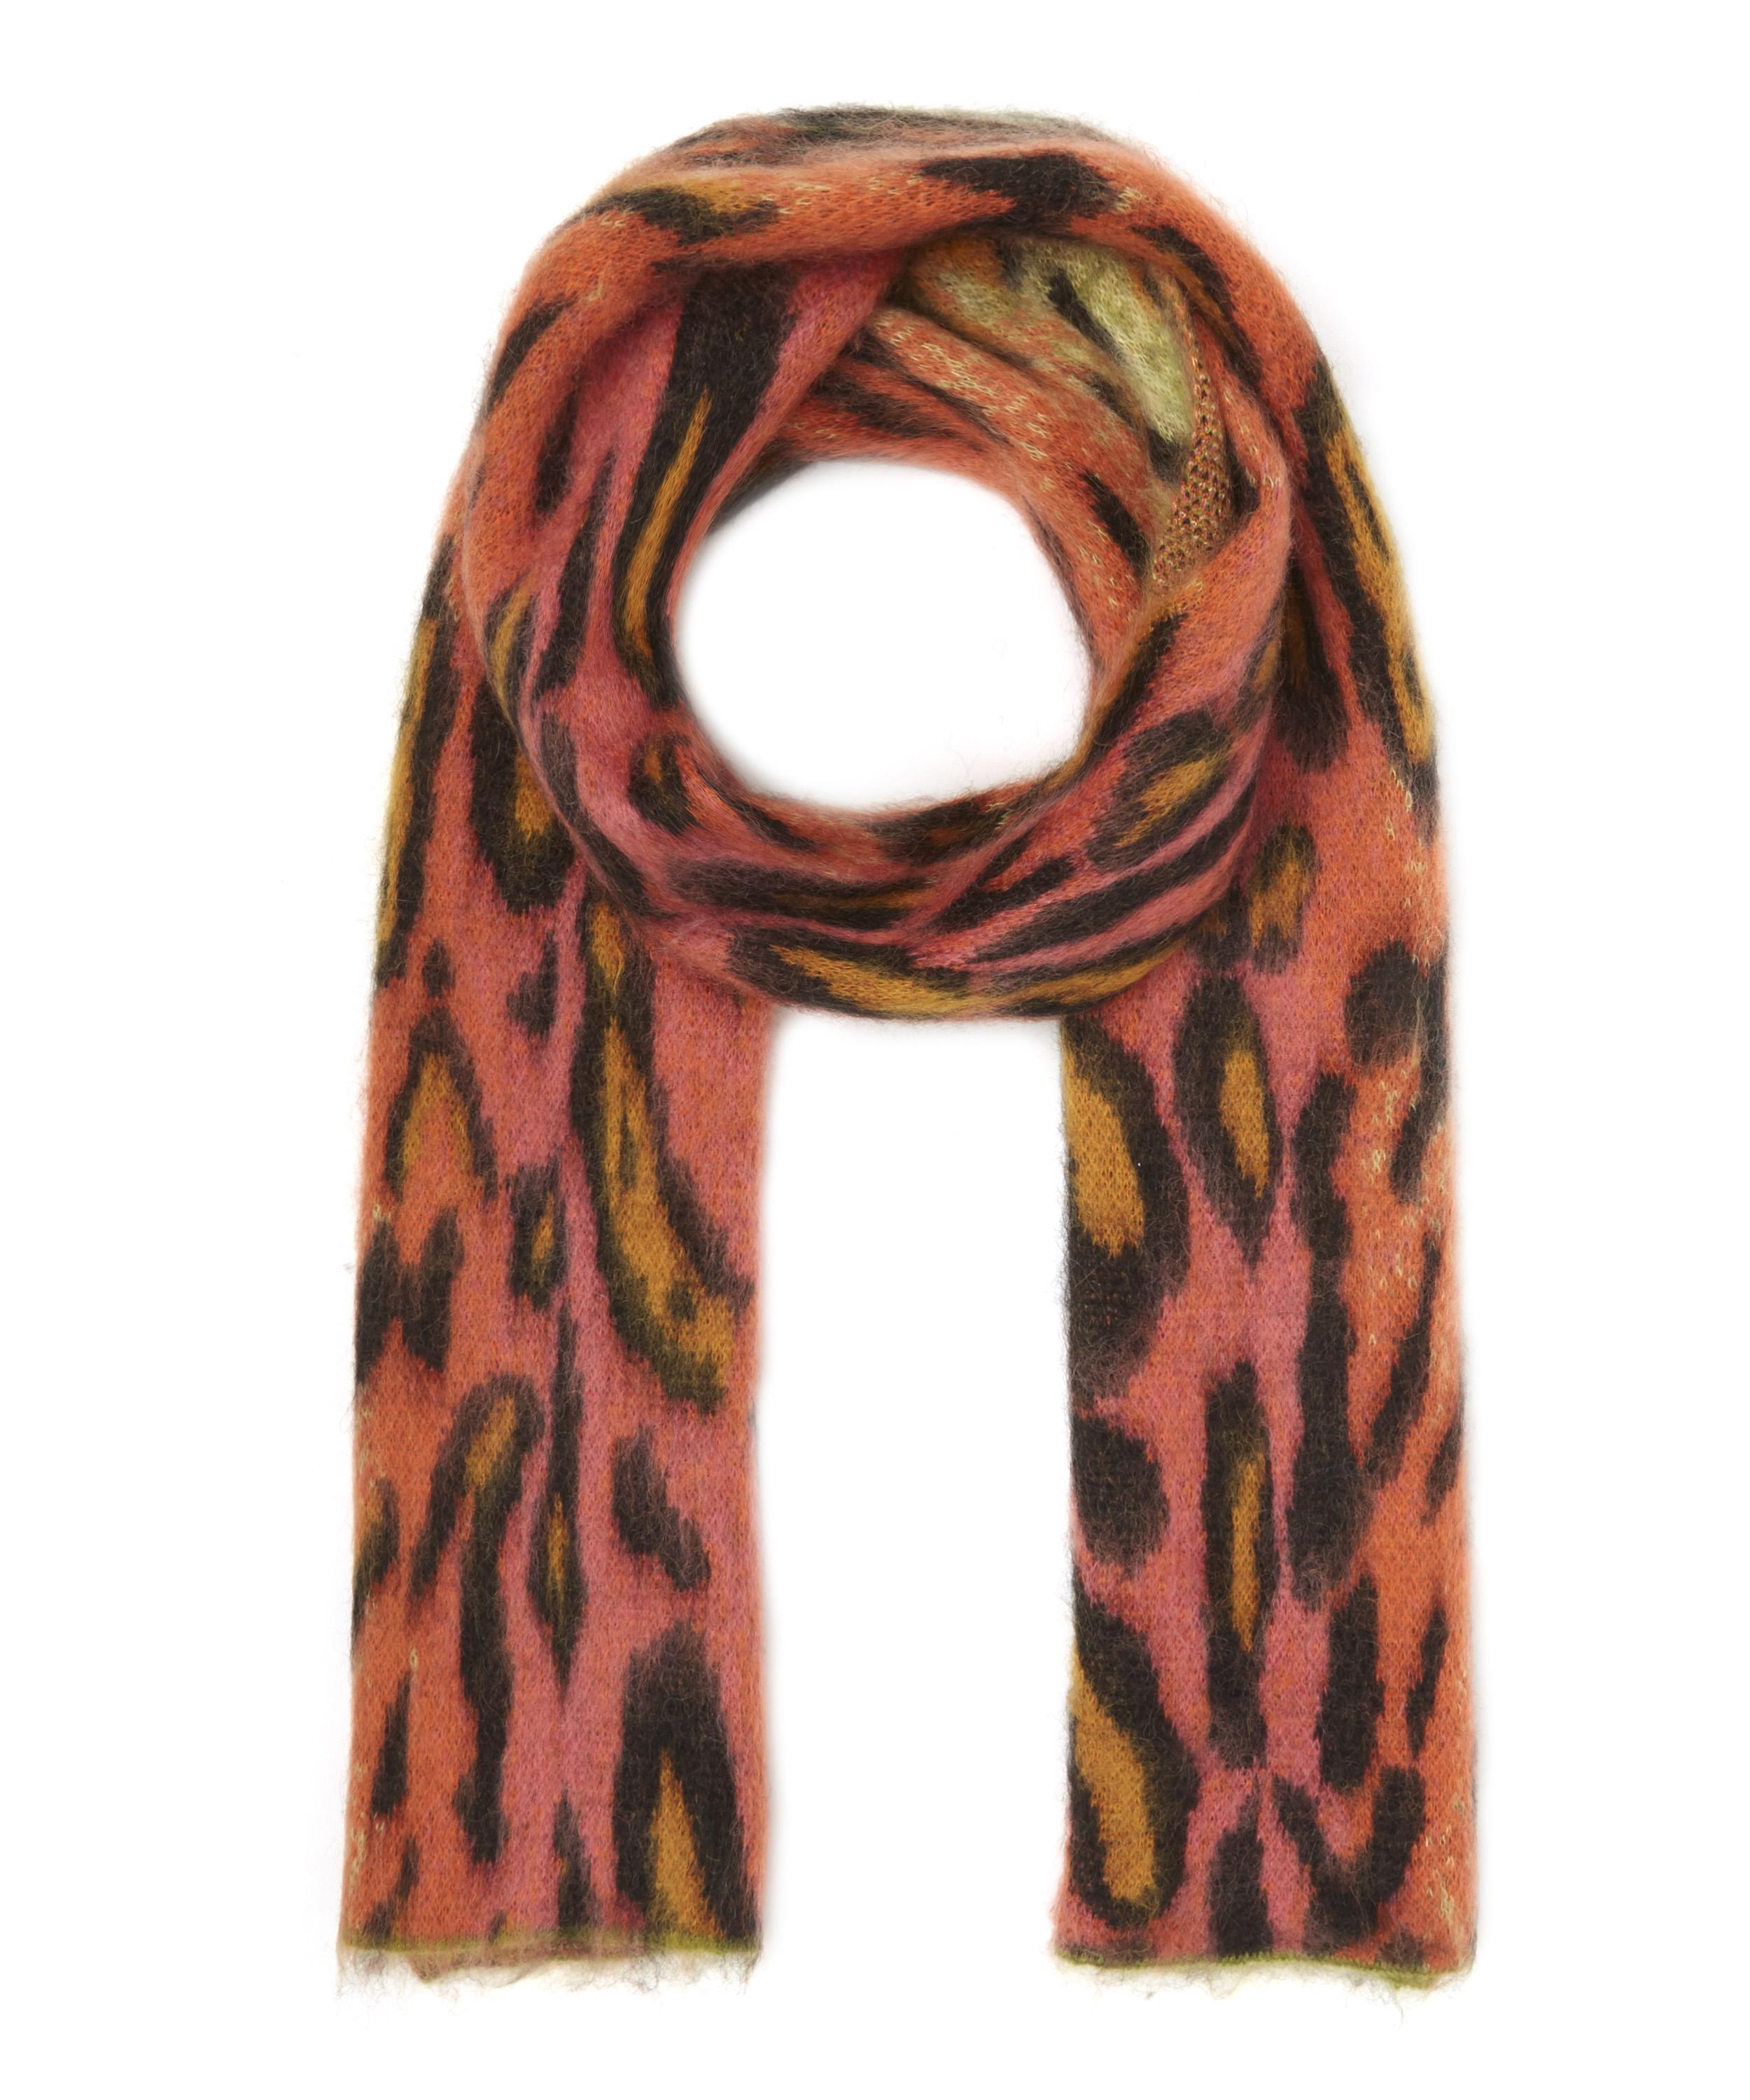 afafb9b6cd Fuzzy Neon Leopard Print Scarf | Liberty London